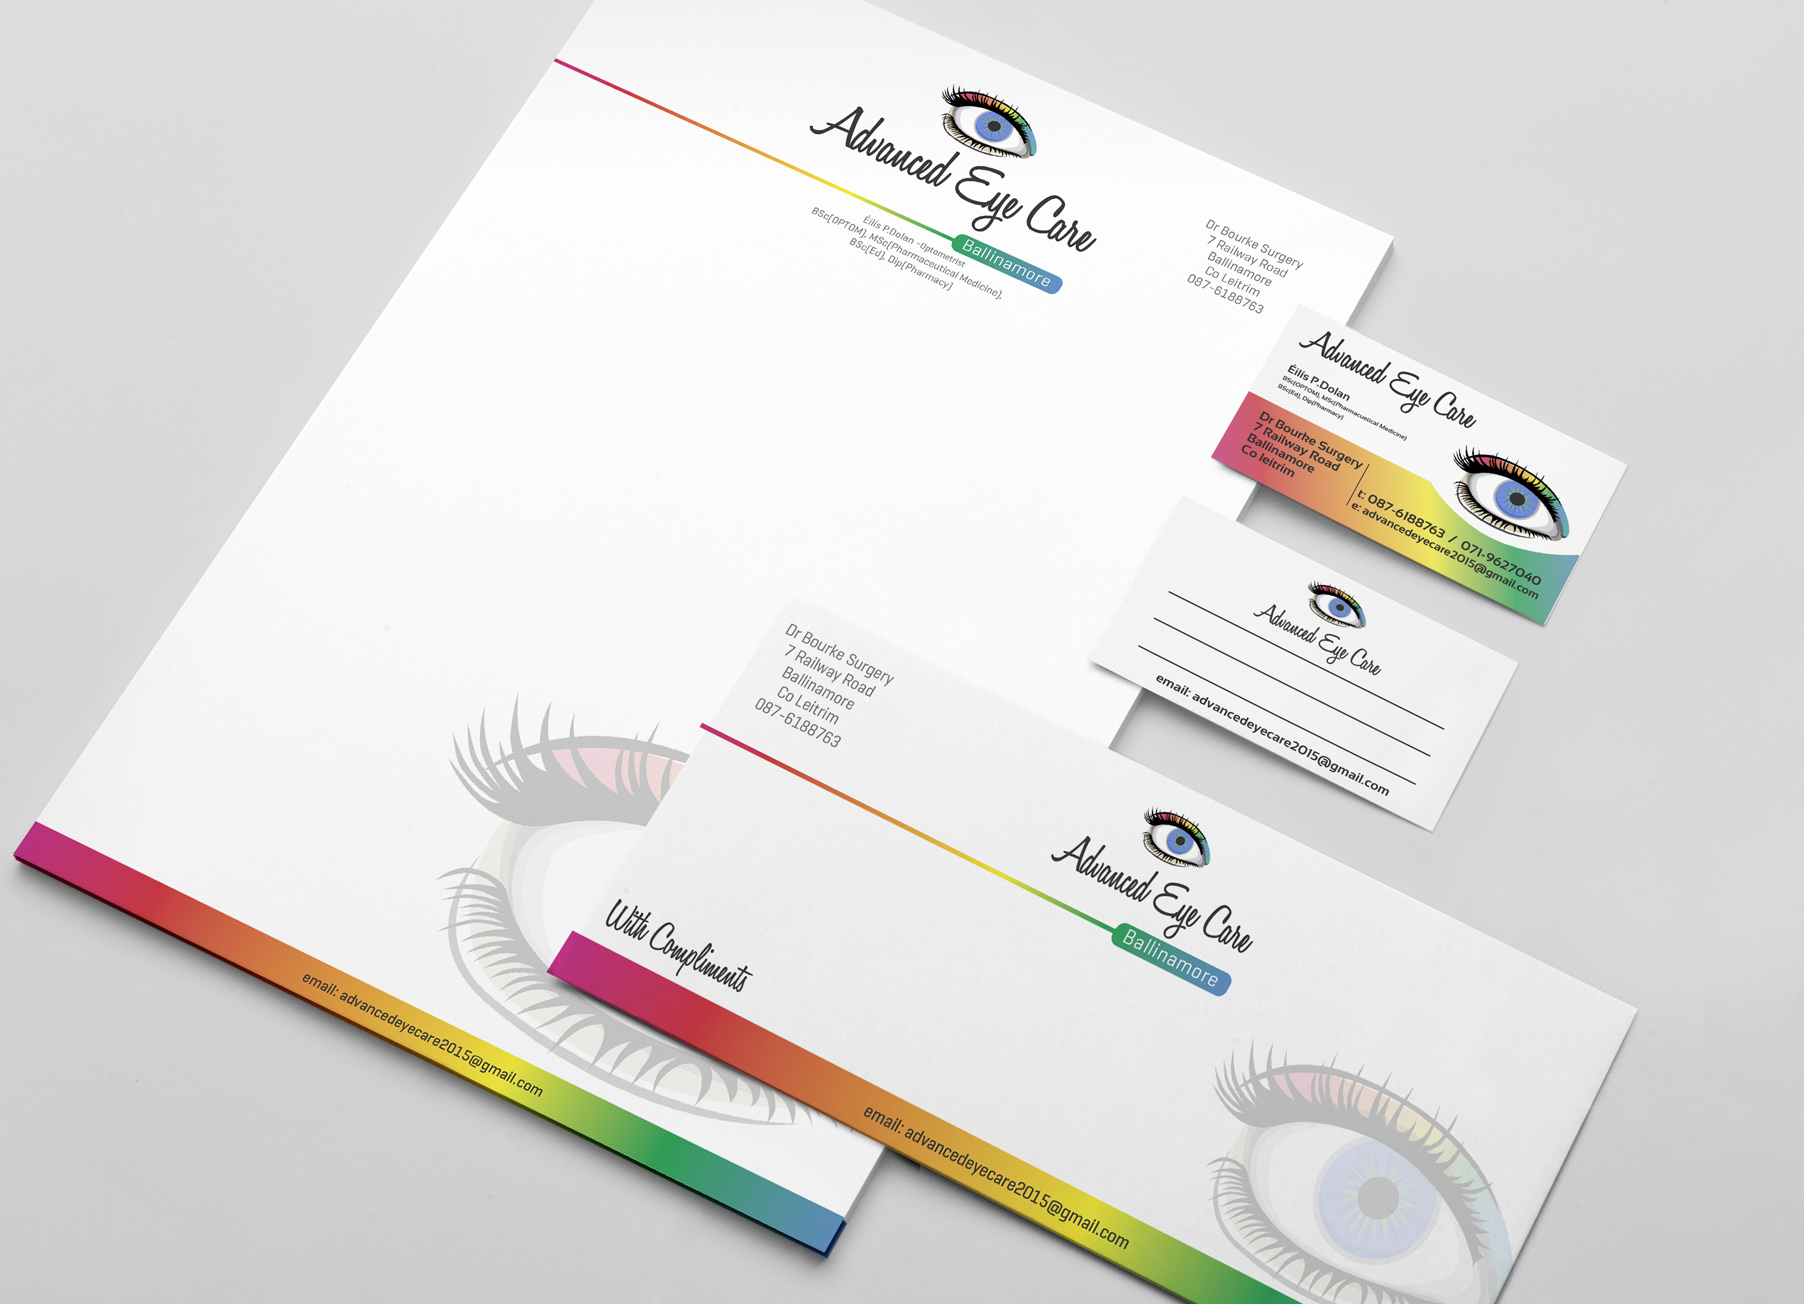 Stationery business cards compliment slips letterheads print business stationery business card letterhead printers in sligo reheart Gallery